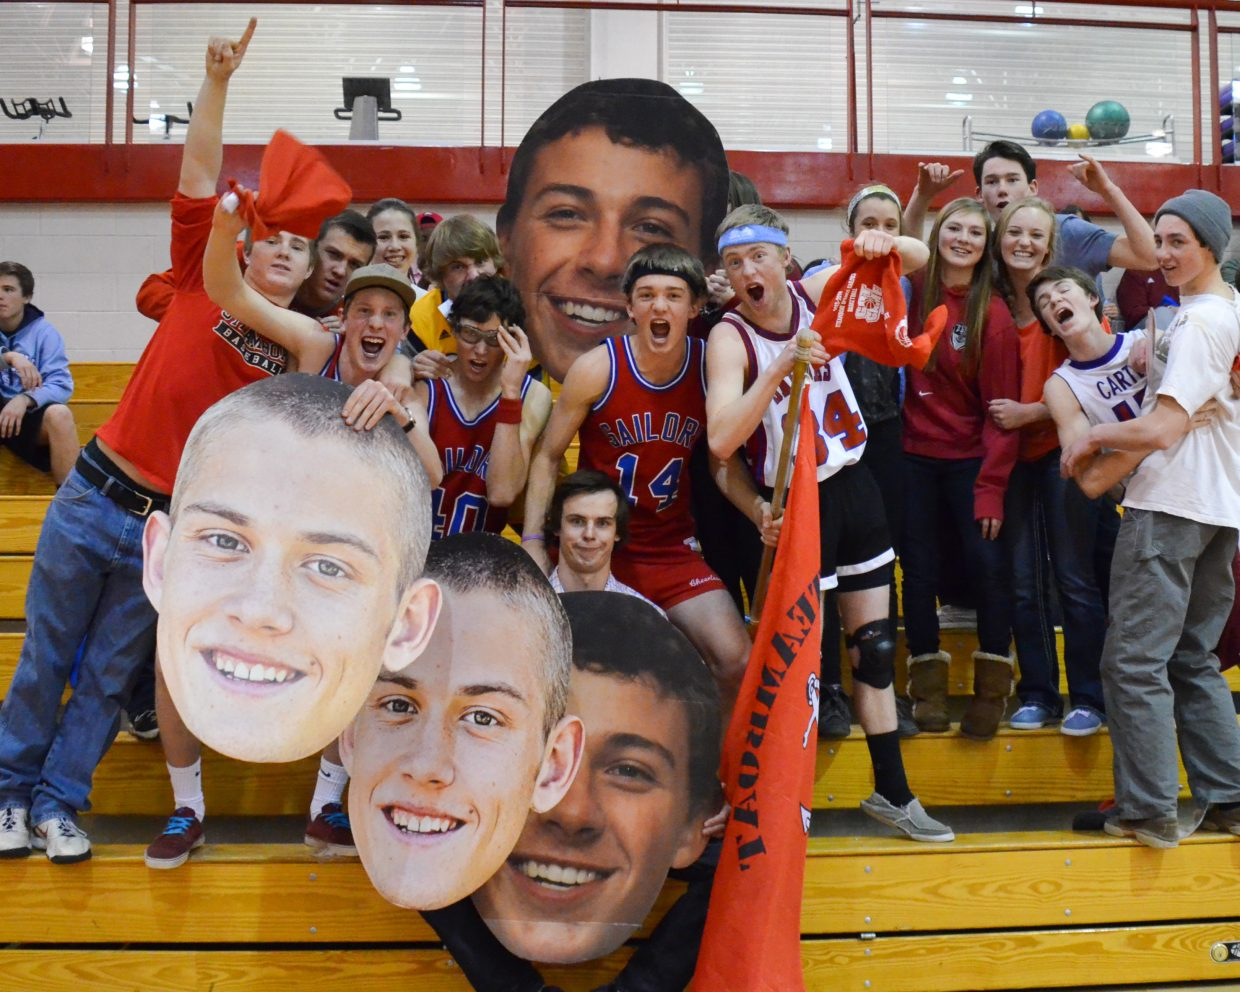 Steamboat fans celebrate senior night with big heads of Sailors players Carter Kounovsky and Zach Dunklin during the game against Summit County on Tuesday night.